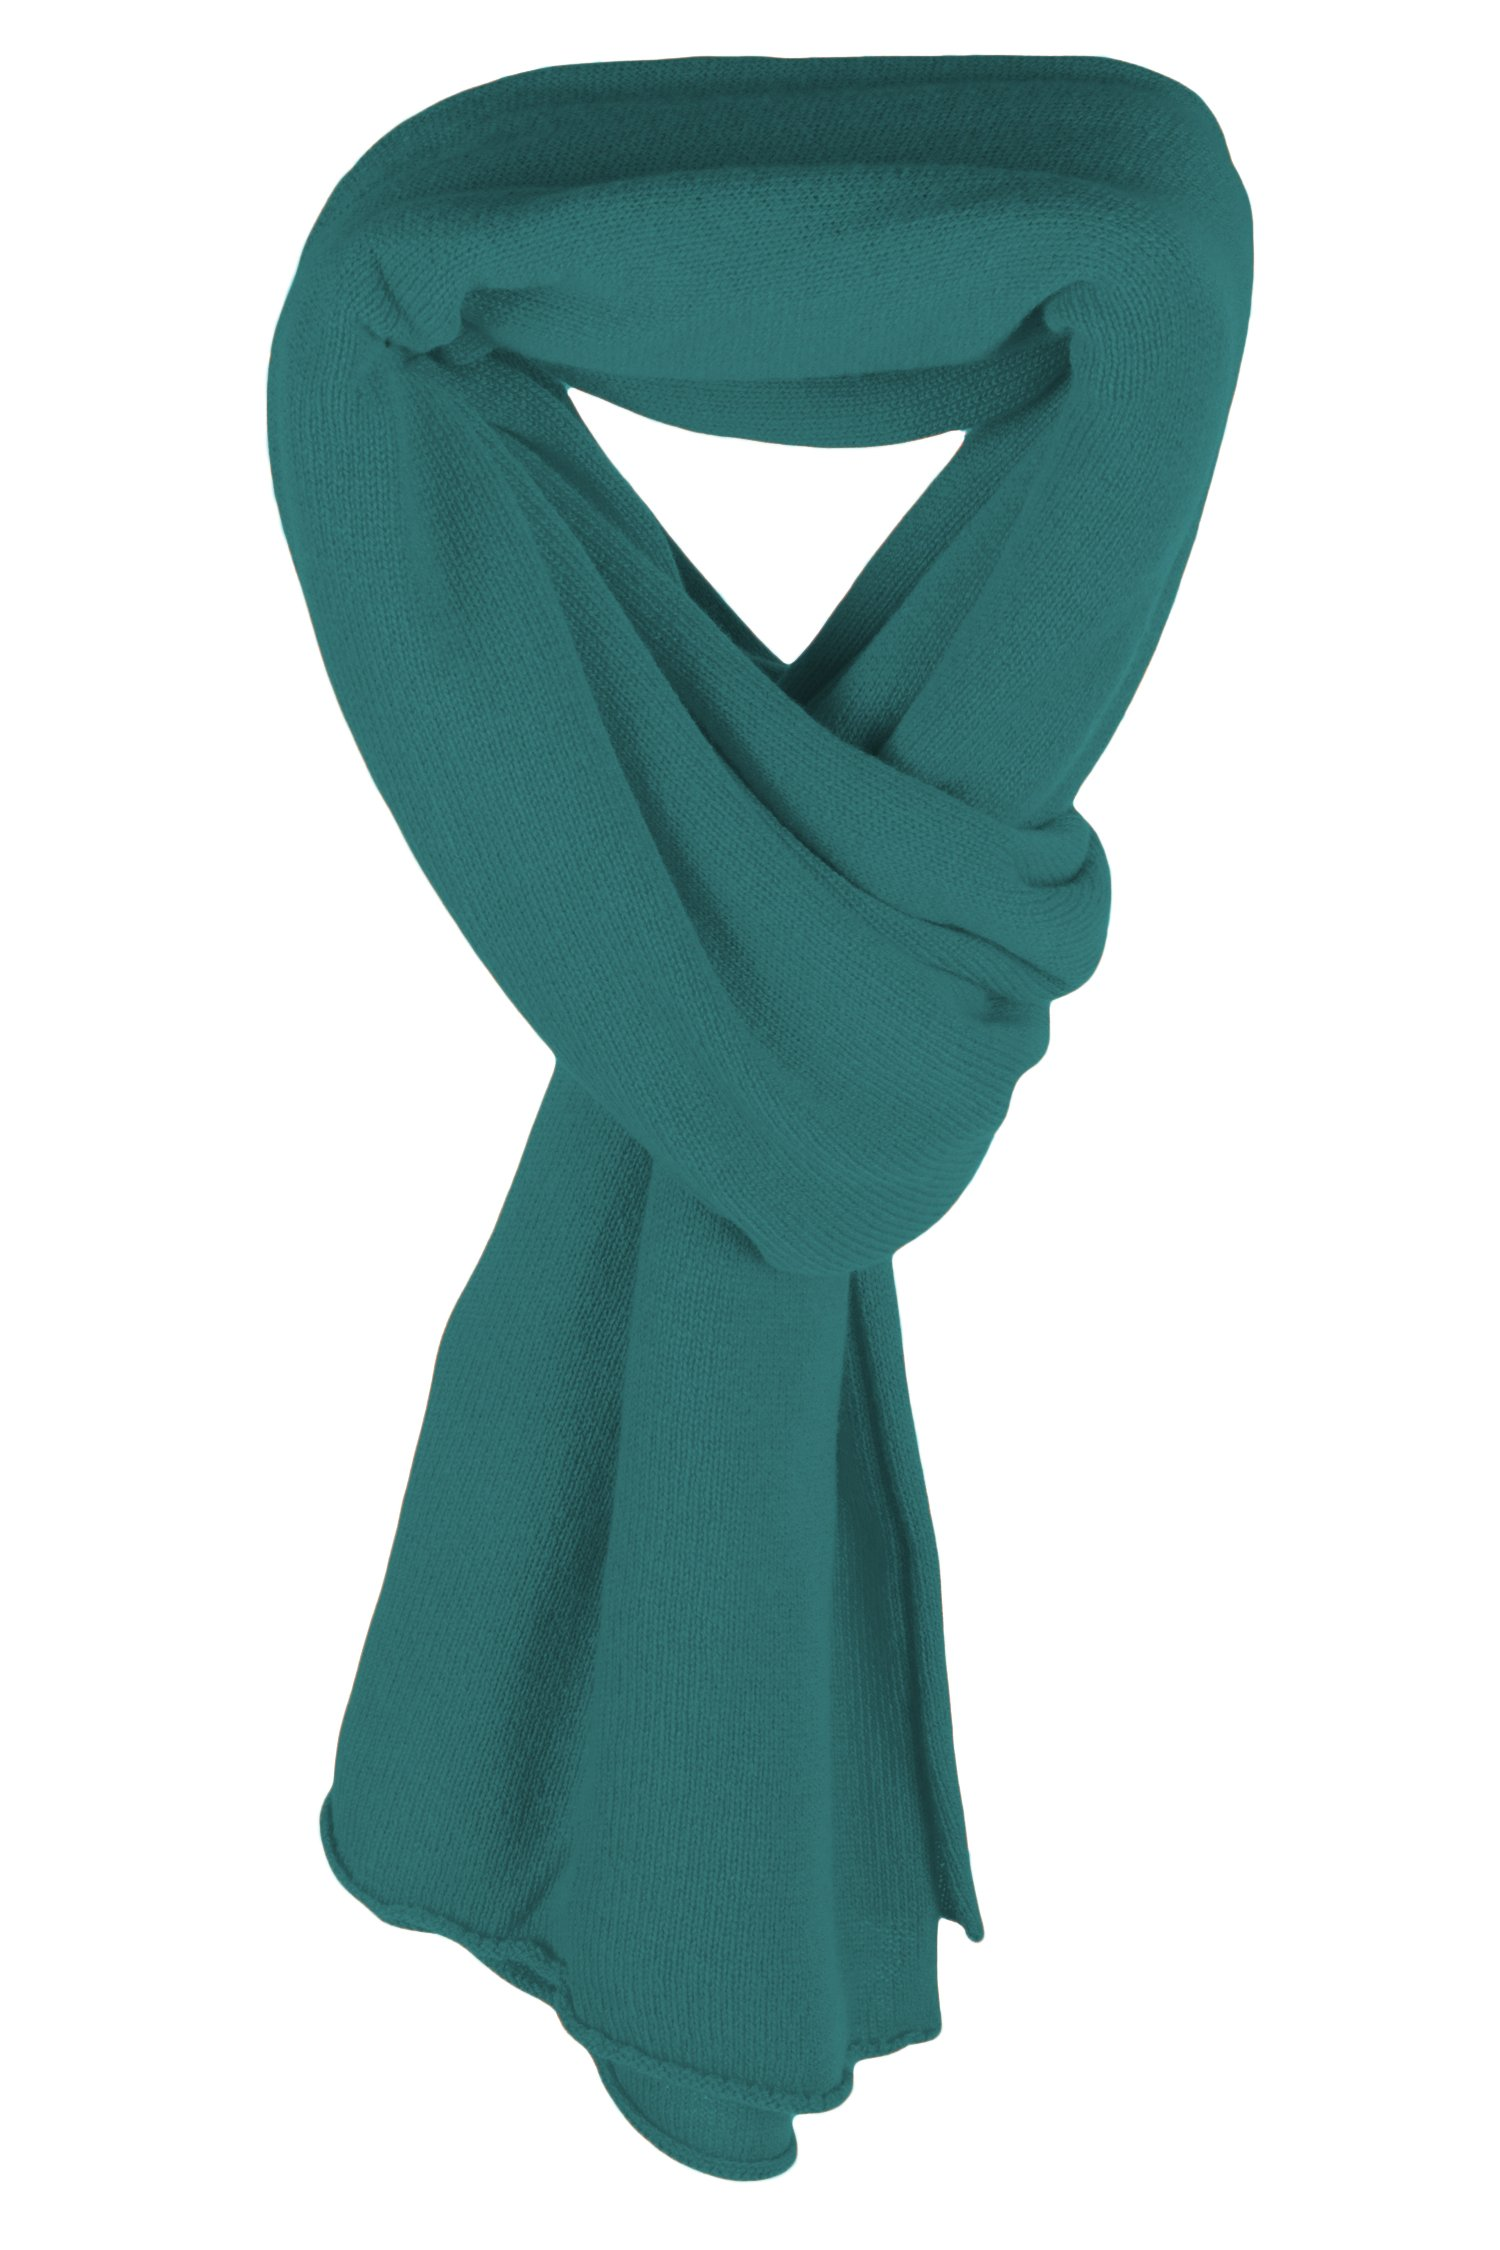 Ladies Ultrafine 100% Cashmere Scarf Wrap - Jade Green - made in Scotland by Love Cashmere RRP $400